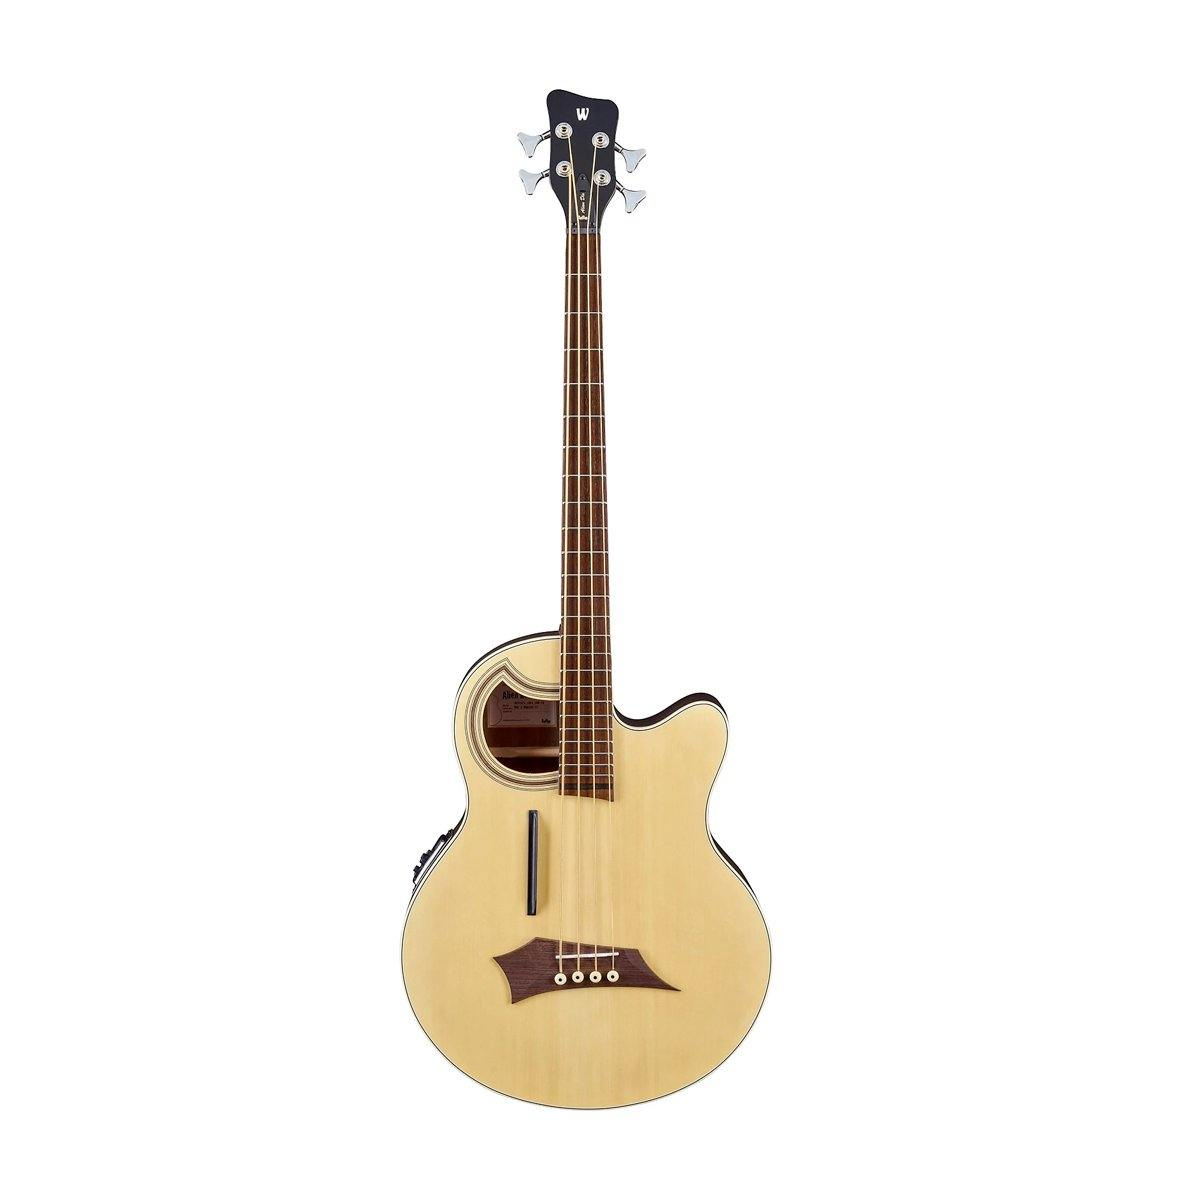 Warwick Alient Deluxe Thinline 4-String Acoustic Bass Guitar - ICONS Shop